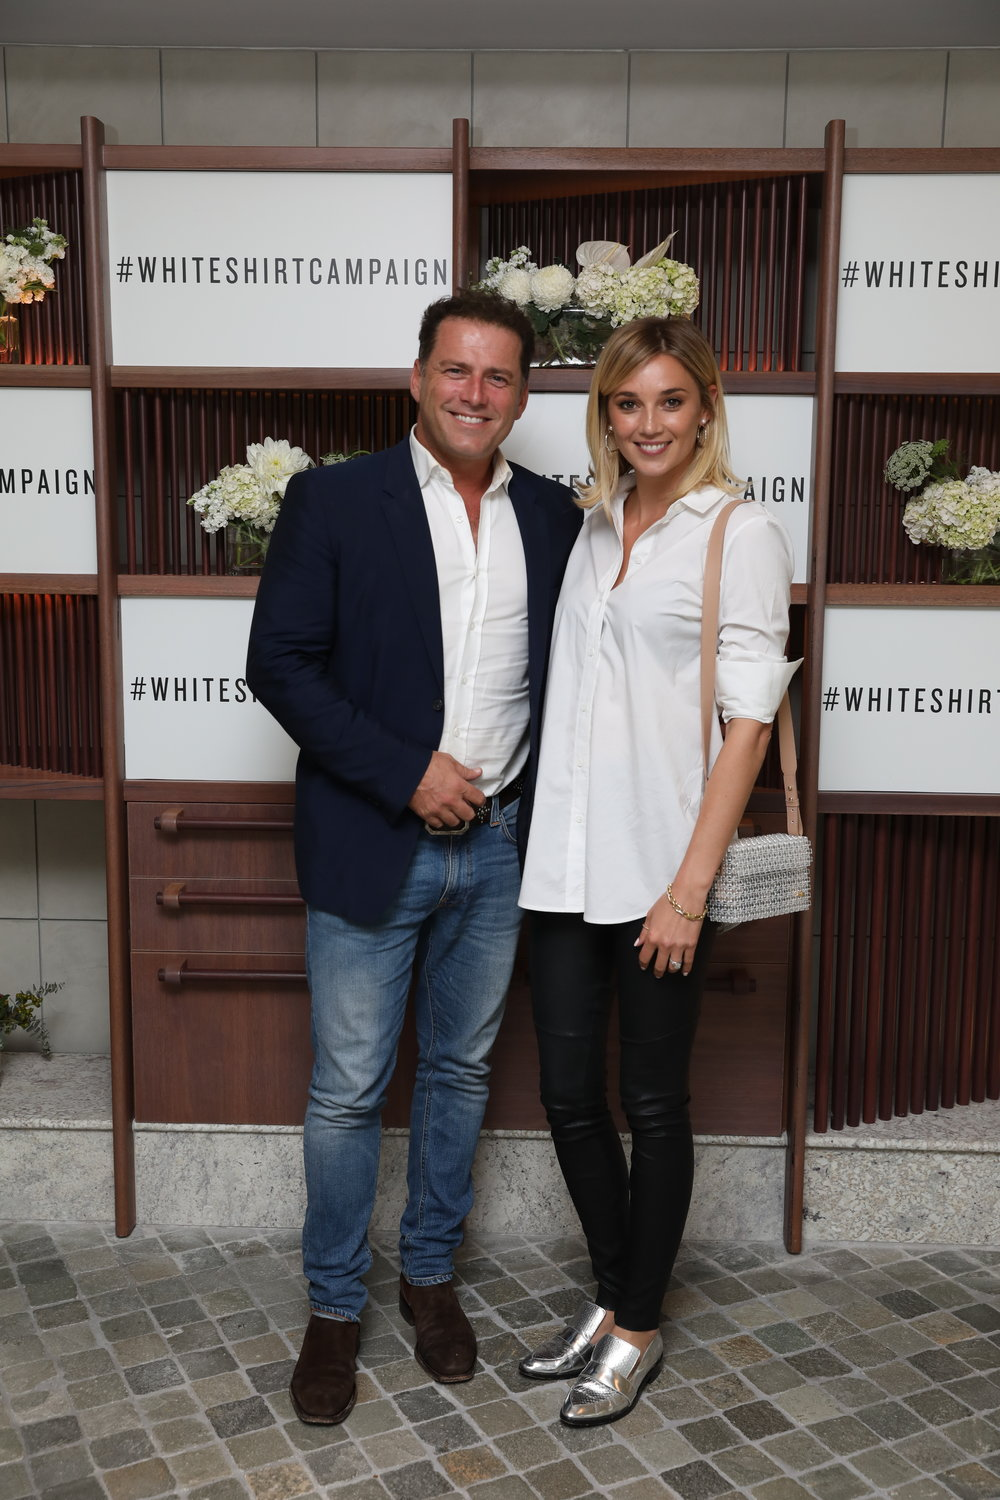 kate-and-co-projects-witchery-ocrf-white-shirt-campaign-2018-karl-stefanovic-jasmine-yarbrough.JPG